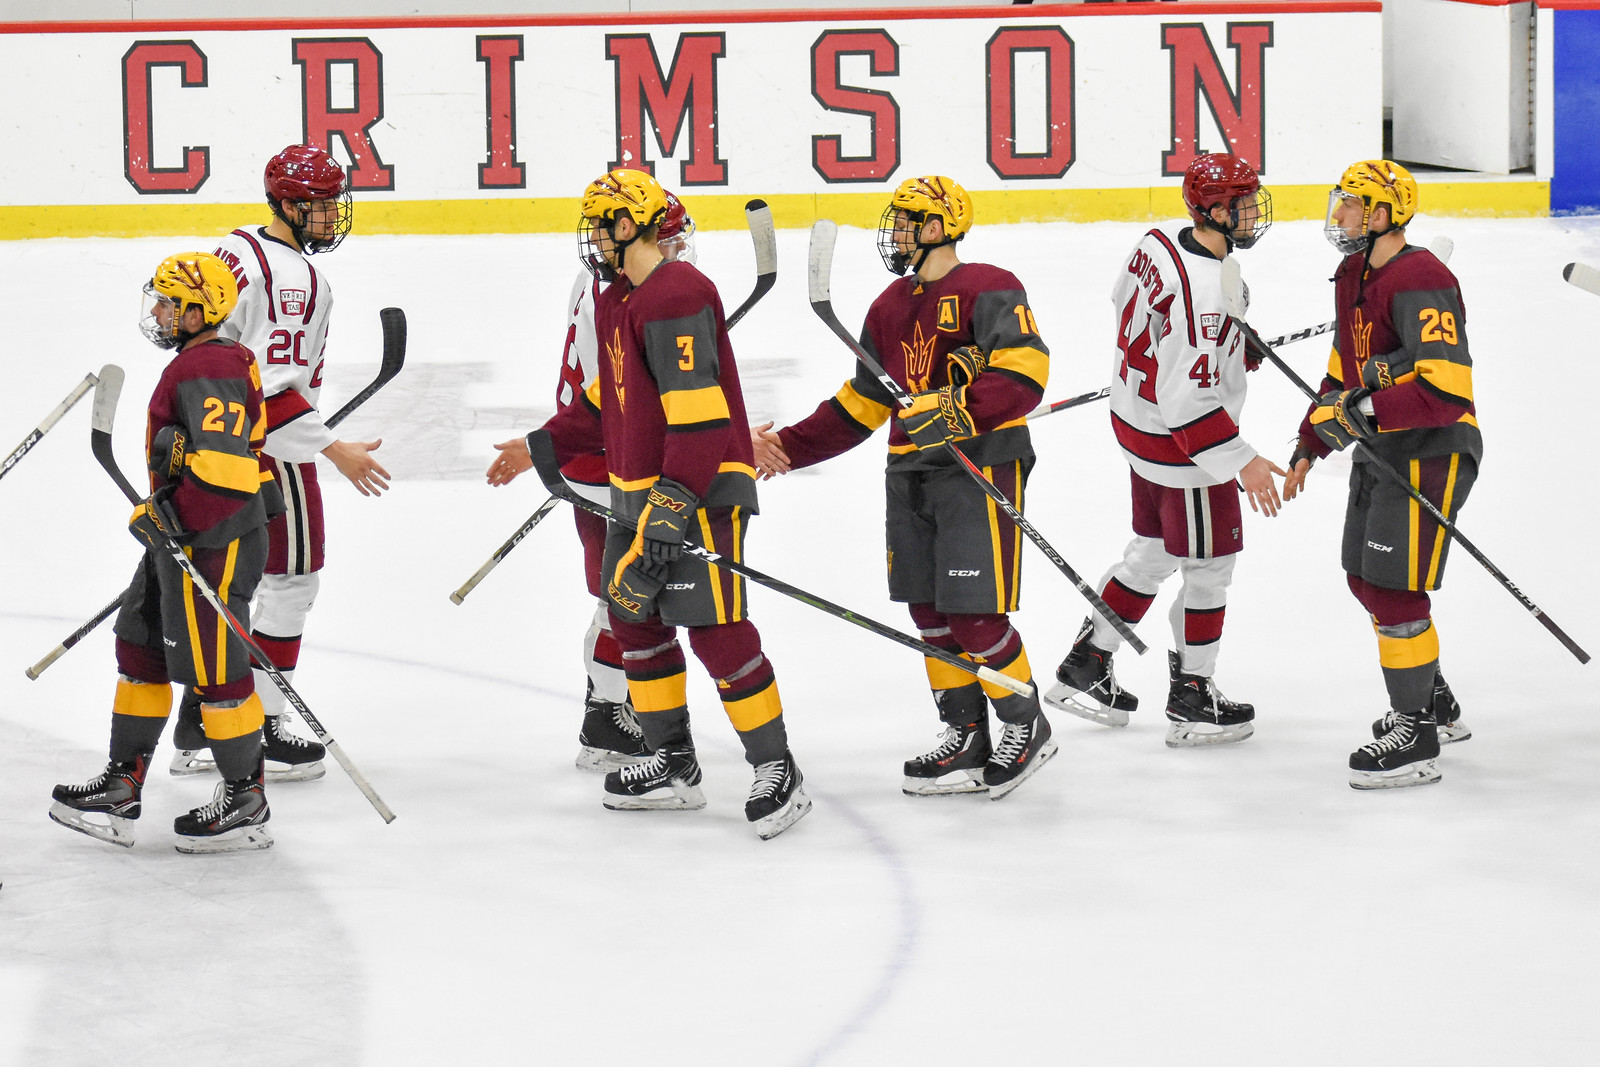 While coach Donato's squad realizes it squandered a chance at a four-point weekend, it showed that it can skate with ranked opponents by taking a game from No. 18 Arizona St.